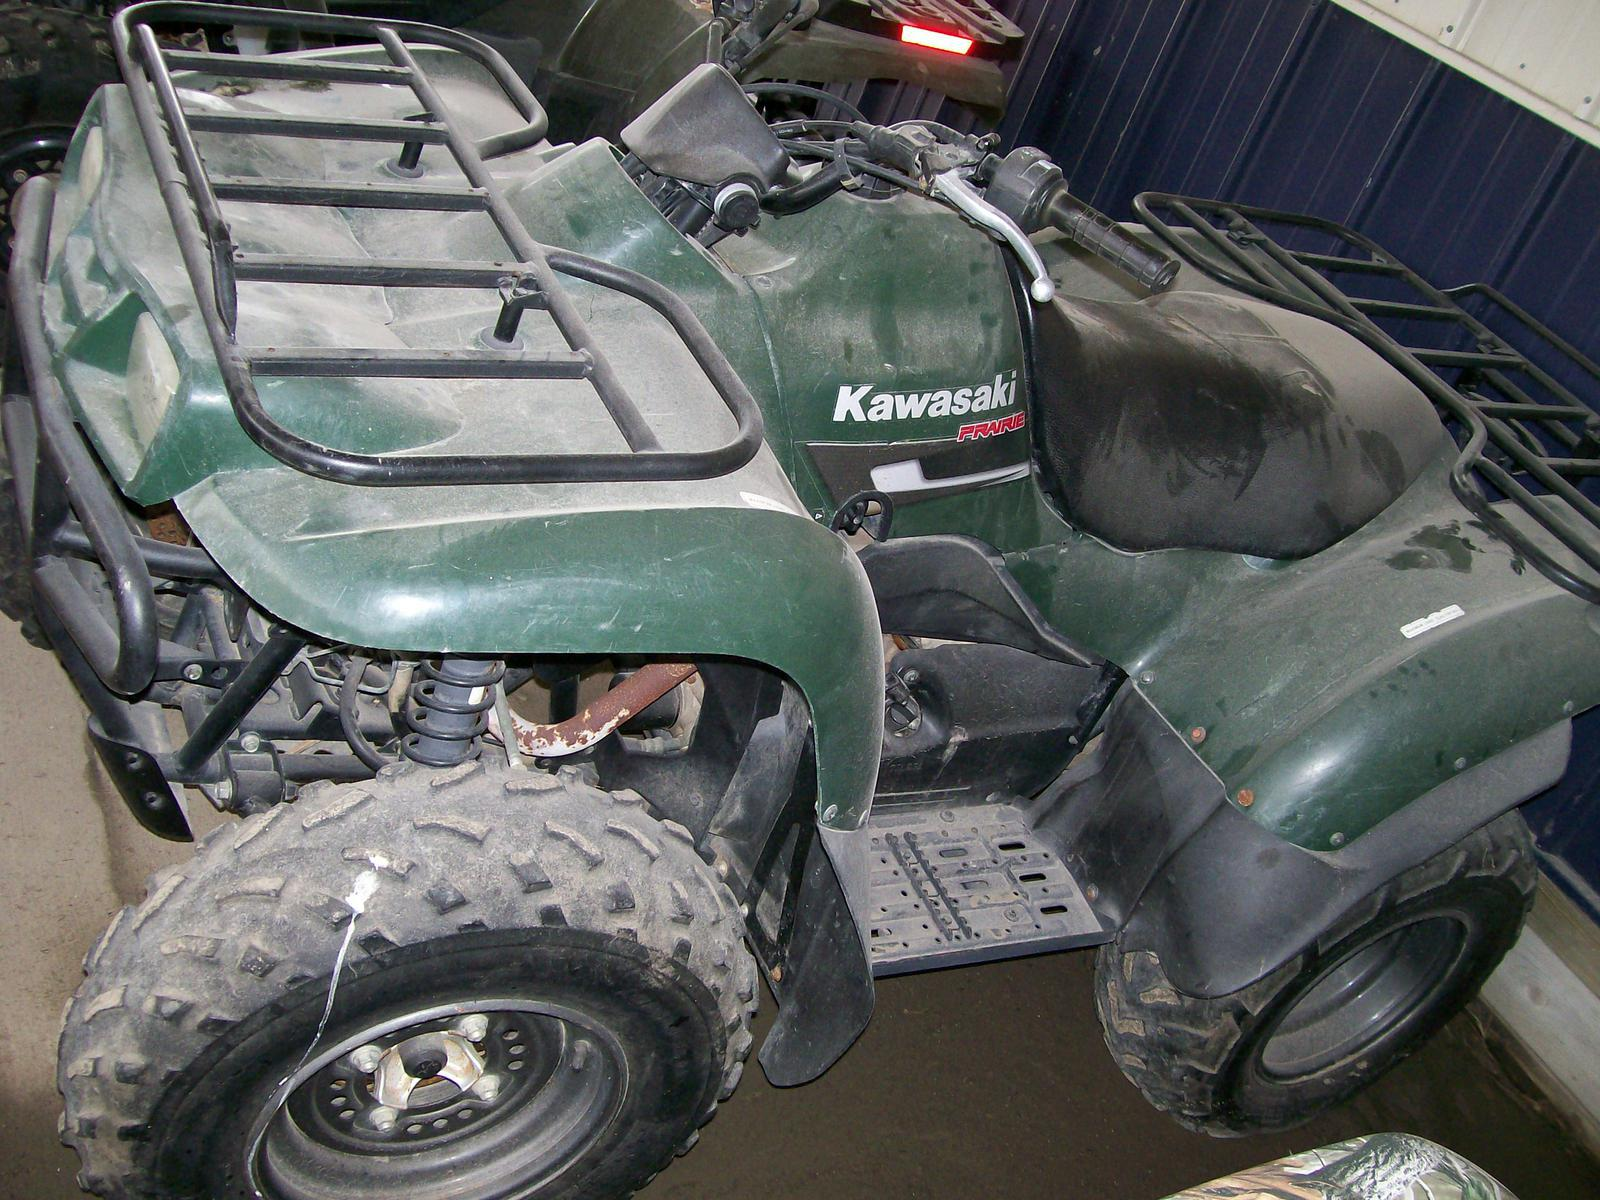 2007 Kawasaki PRAIRIE 360 for sale in Chariton, IA. C & C Custom ...